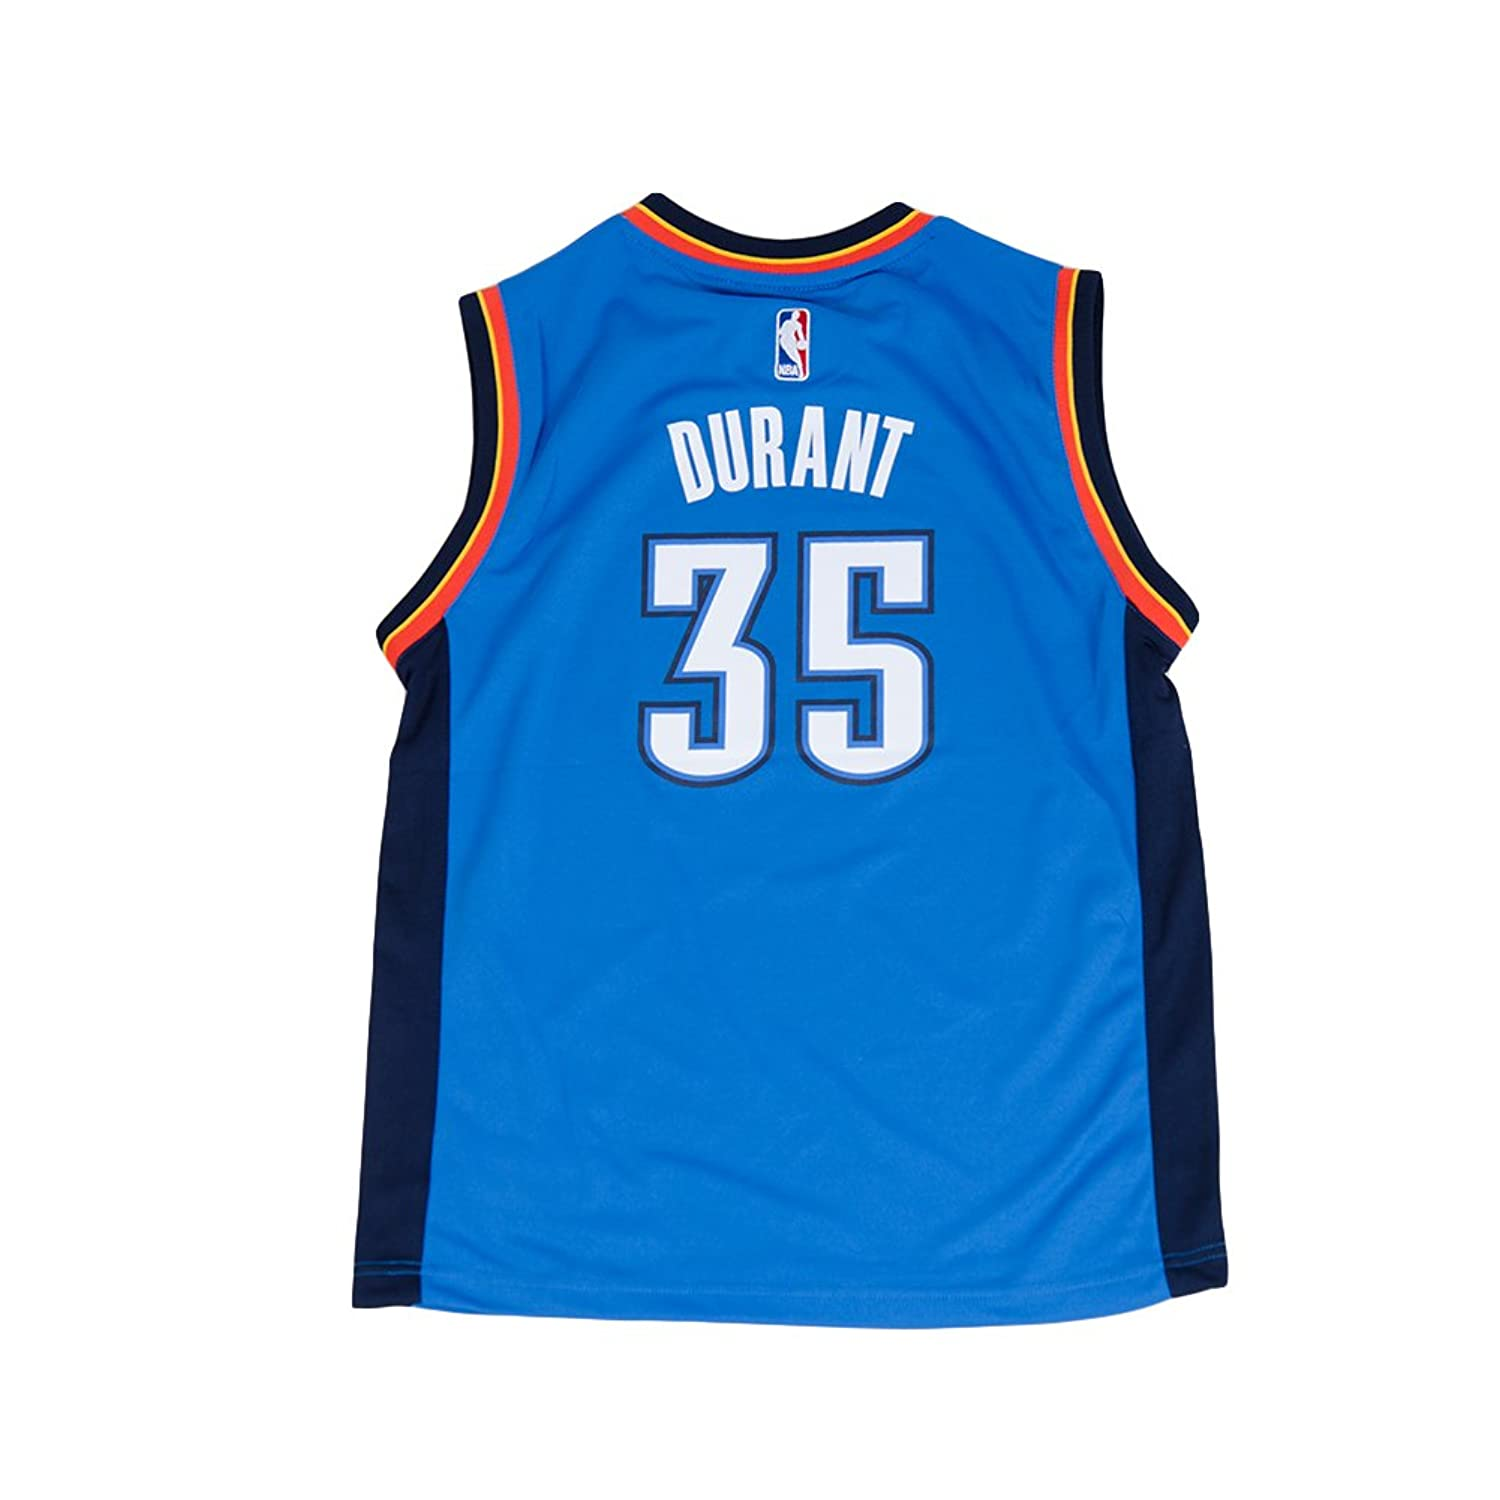 919923bdf Amazon.com  Adidas Oklahoma City Thunder Youth s Replica Road Jersey Durant  Shirt Thunder Strong Blue  Sports   Outdoors